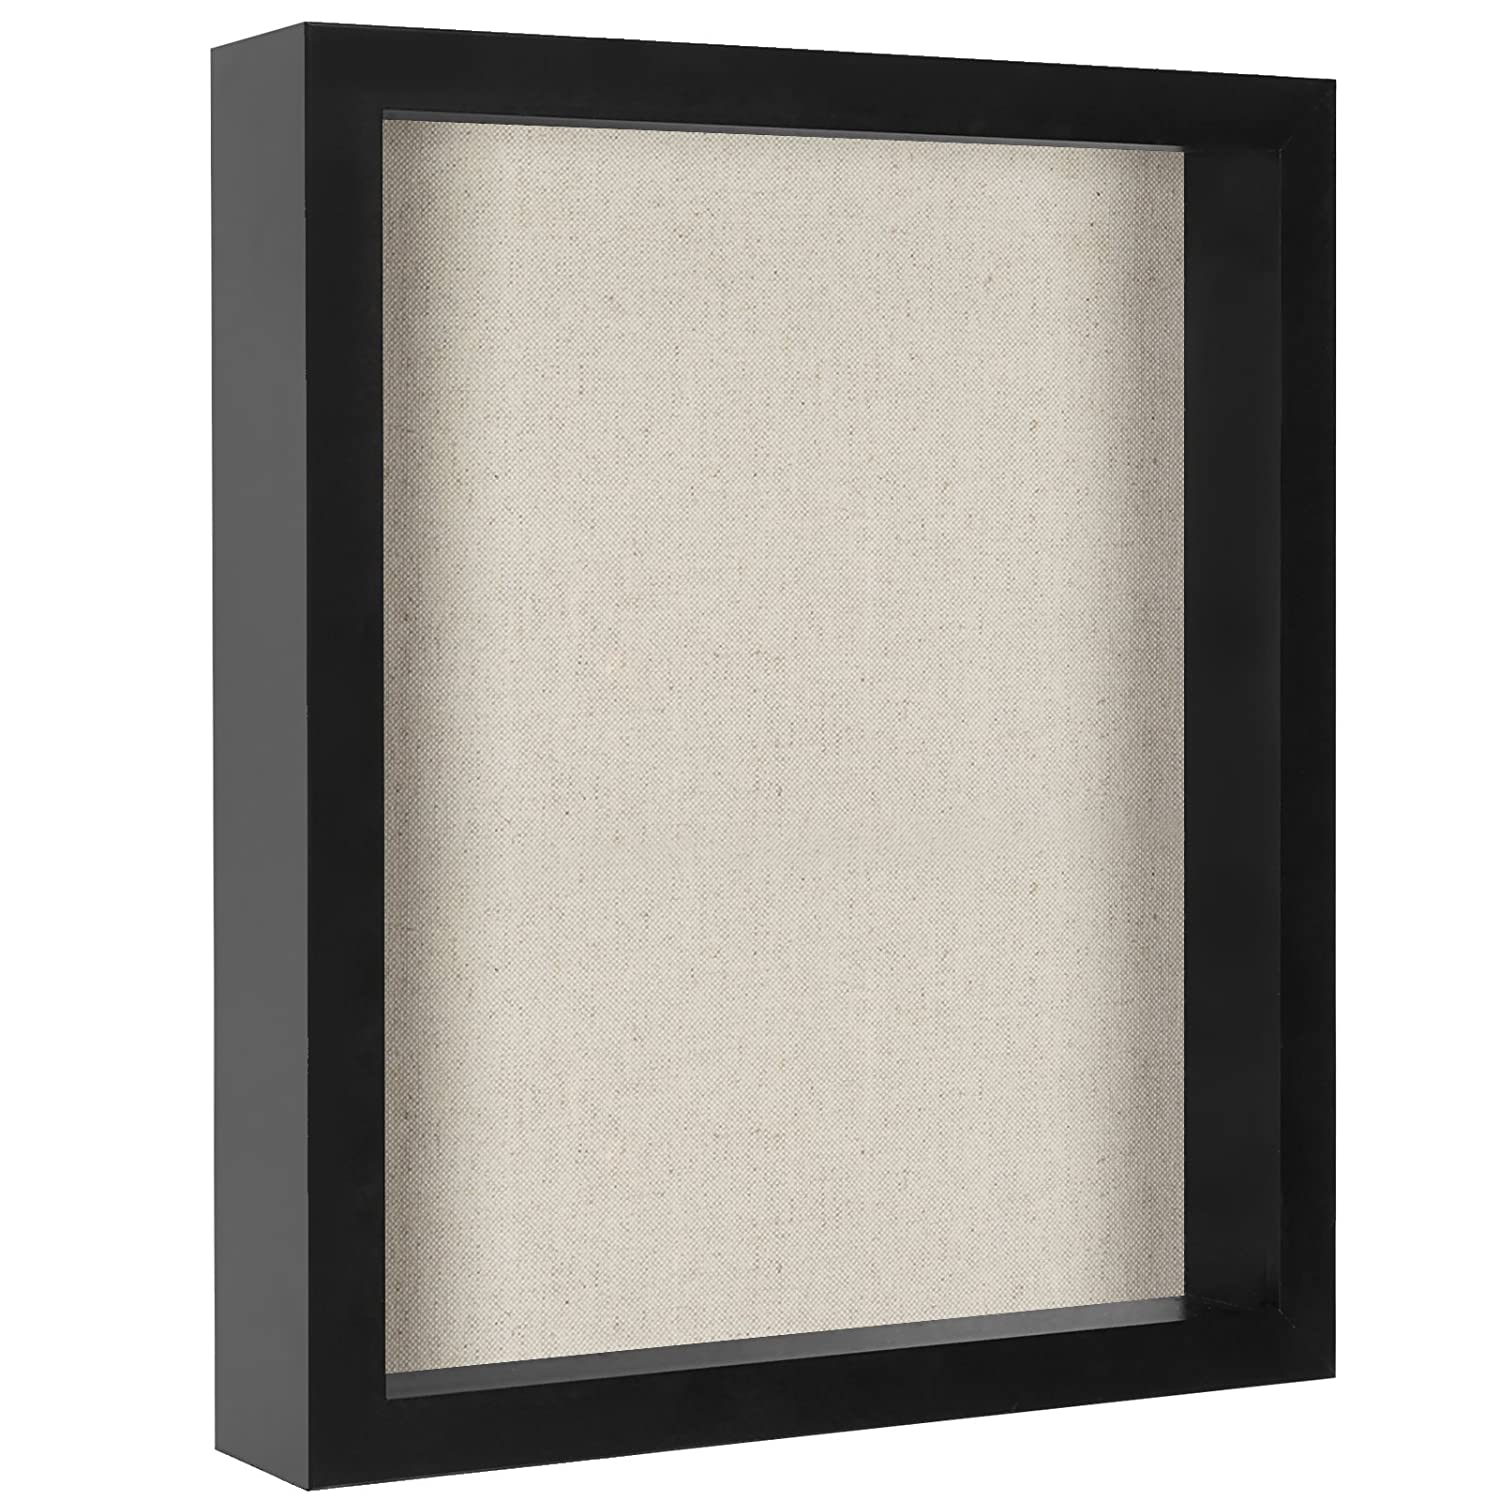 8x10 Inch Shadow Box Frame with Soft Linen Back - Perfect to Display Memorabilia, Pins, Awards, Medals, Tickets and Photos Americanflat SB0810BK